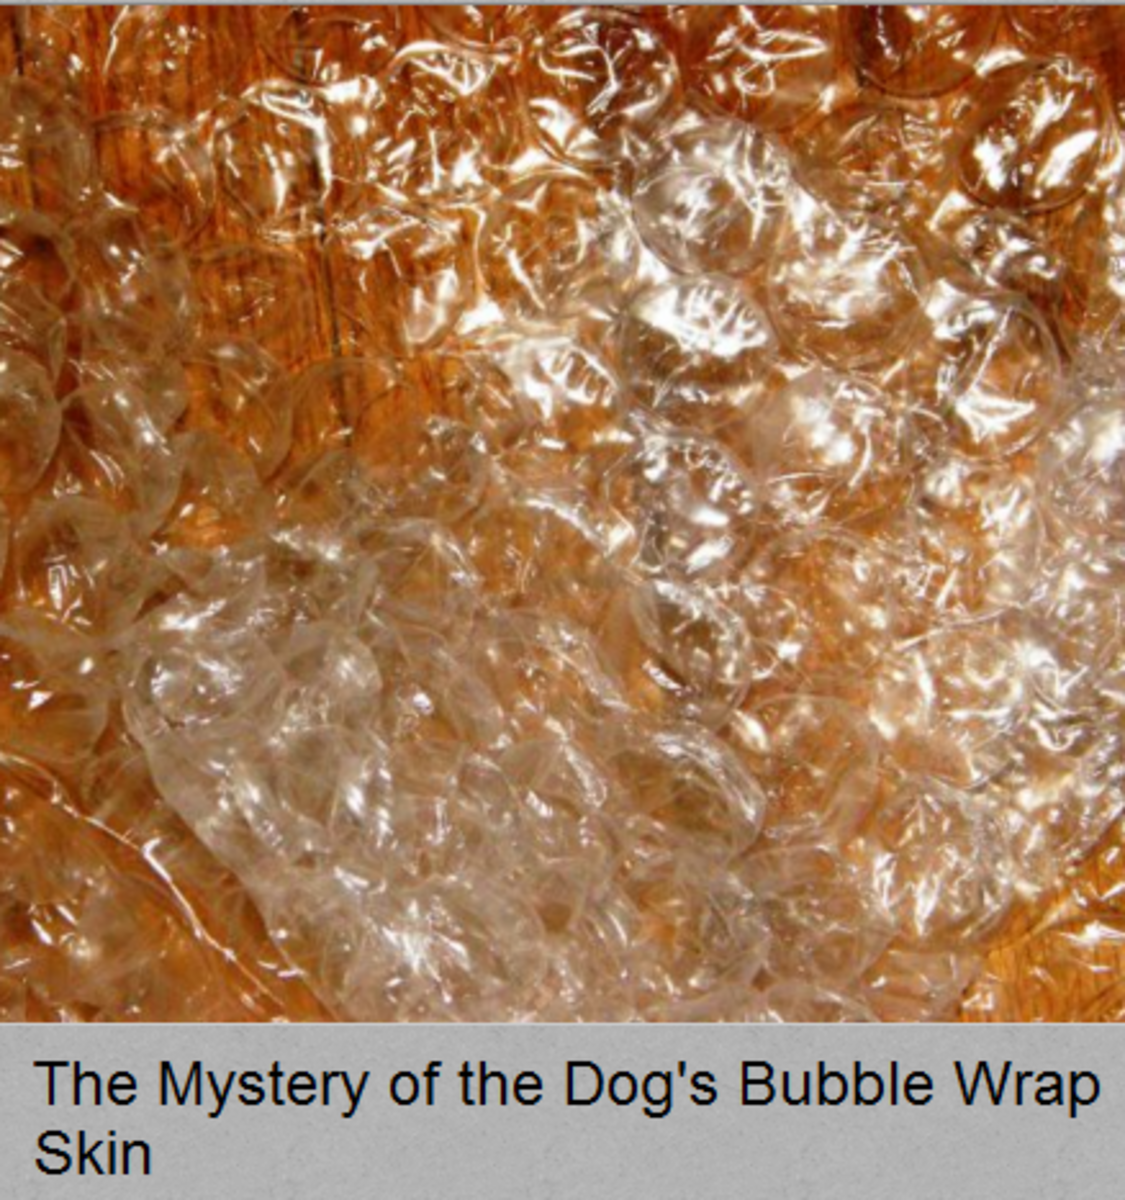 The Mystery of Air Bubbles Under a Dog's Skin - Dog Discoveries